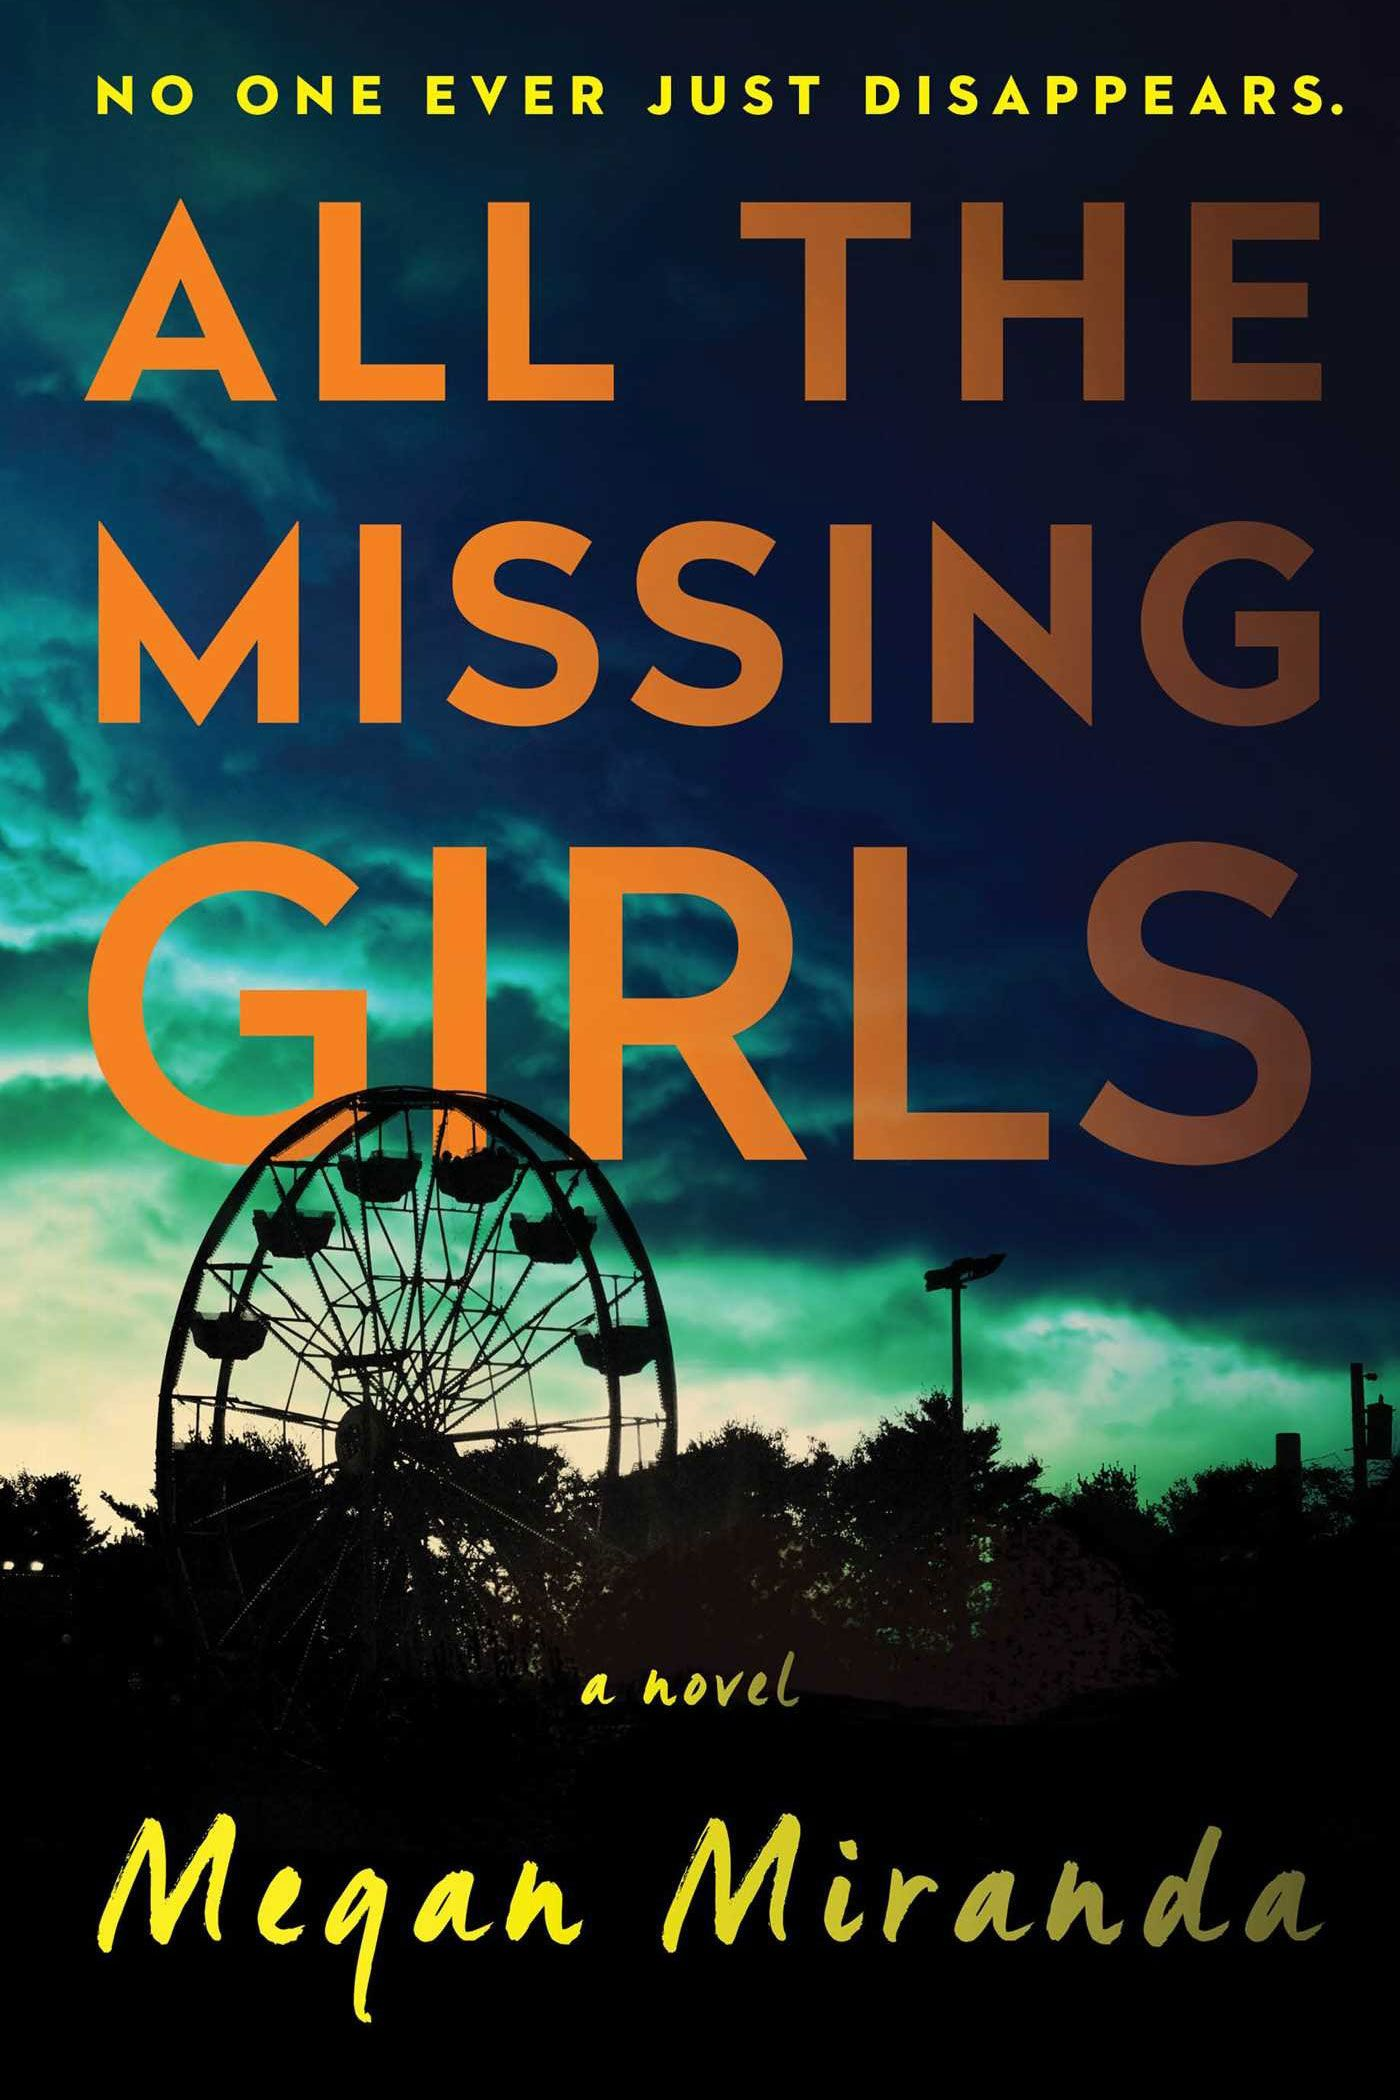 "<p>If you're loved <em data-redactor-tag=""em"" data-verified=""redactor"">BLL</em> and <em data-redactor-tag=""em"" data-verified=""redactor"">Gone Girl</em>, there couldn't be a more tantalizing escape to indulge in this spring. Two women disappear a decade apart, and this psychologically teasing thrill read explores their harrowing cases told in reverse over the course of 15 days. Full of shocking twists and surprise hooks, <em data-redactor-tag=""em"" data-verified=""redactor"">All The Missing Girls </em>needs to be a part of your BLL emergency recovery plan.</p><p><strong data-verified=""redactor"" data-redactor-tag=""strong""><a href=""https://www.amazon.com/All-Missing-Girls-Megan-Miranda/dp/1501107976?tag=redbook_auto-append-20"" target=""_blank"" class=""slide-buy--button"" data-tracking-id=""recirc-text-link"">BUY NOW</a></strong><br></p><p><strong data-verified=""redactor"" data-redactor-tag=""strong"">RELATED: <a href=""http://www.redbookmag.com/life/g4216/spring-2017-books/"" target=""_blank"" data-tracking-id=""recirc-text-link"">20 Must-Read Books for Spring 2017</a><span class=""redactor-invisible-space""><a href=""http://www.redbookmag.com/life/g4216/spring-2017-books/""></a></span></strong><br></p>"